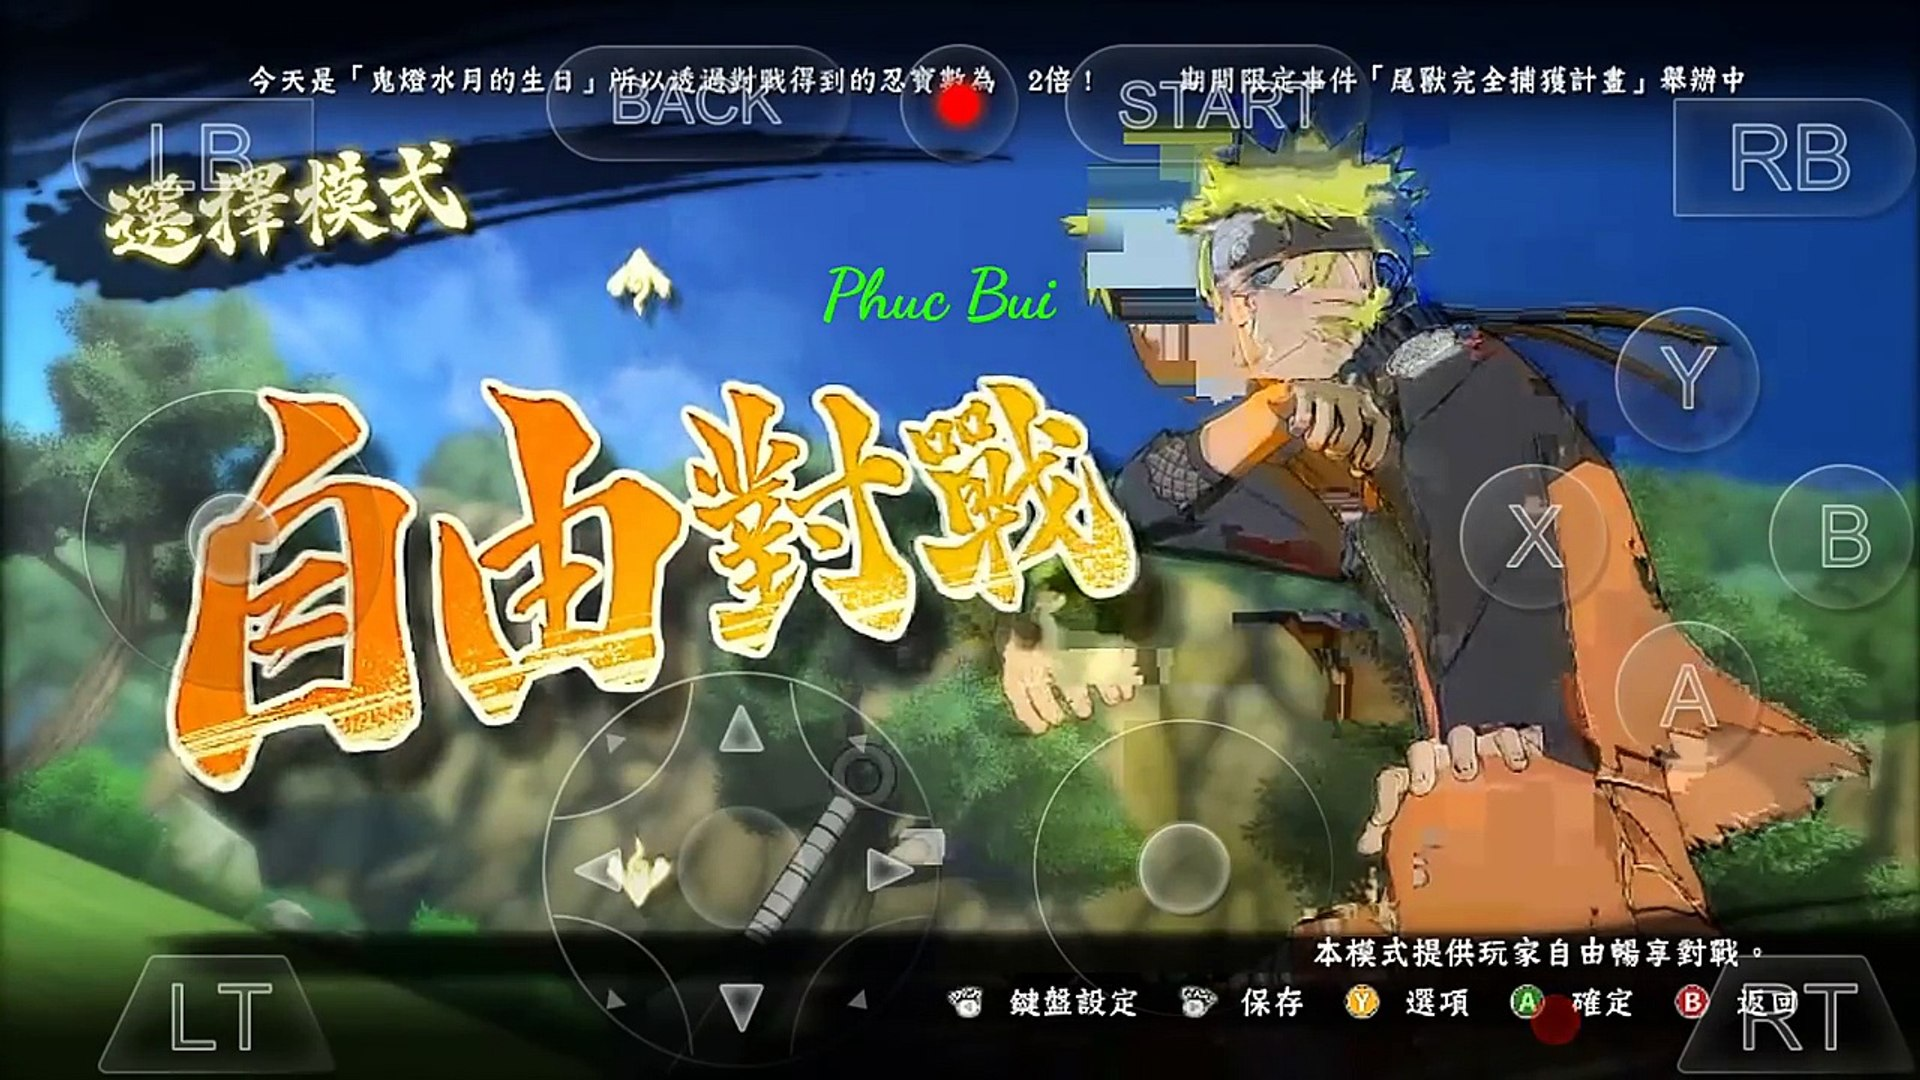 Naruto Shippuden Ultimate Ninja Storm 4 Android Gloud Game Review